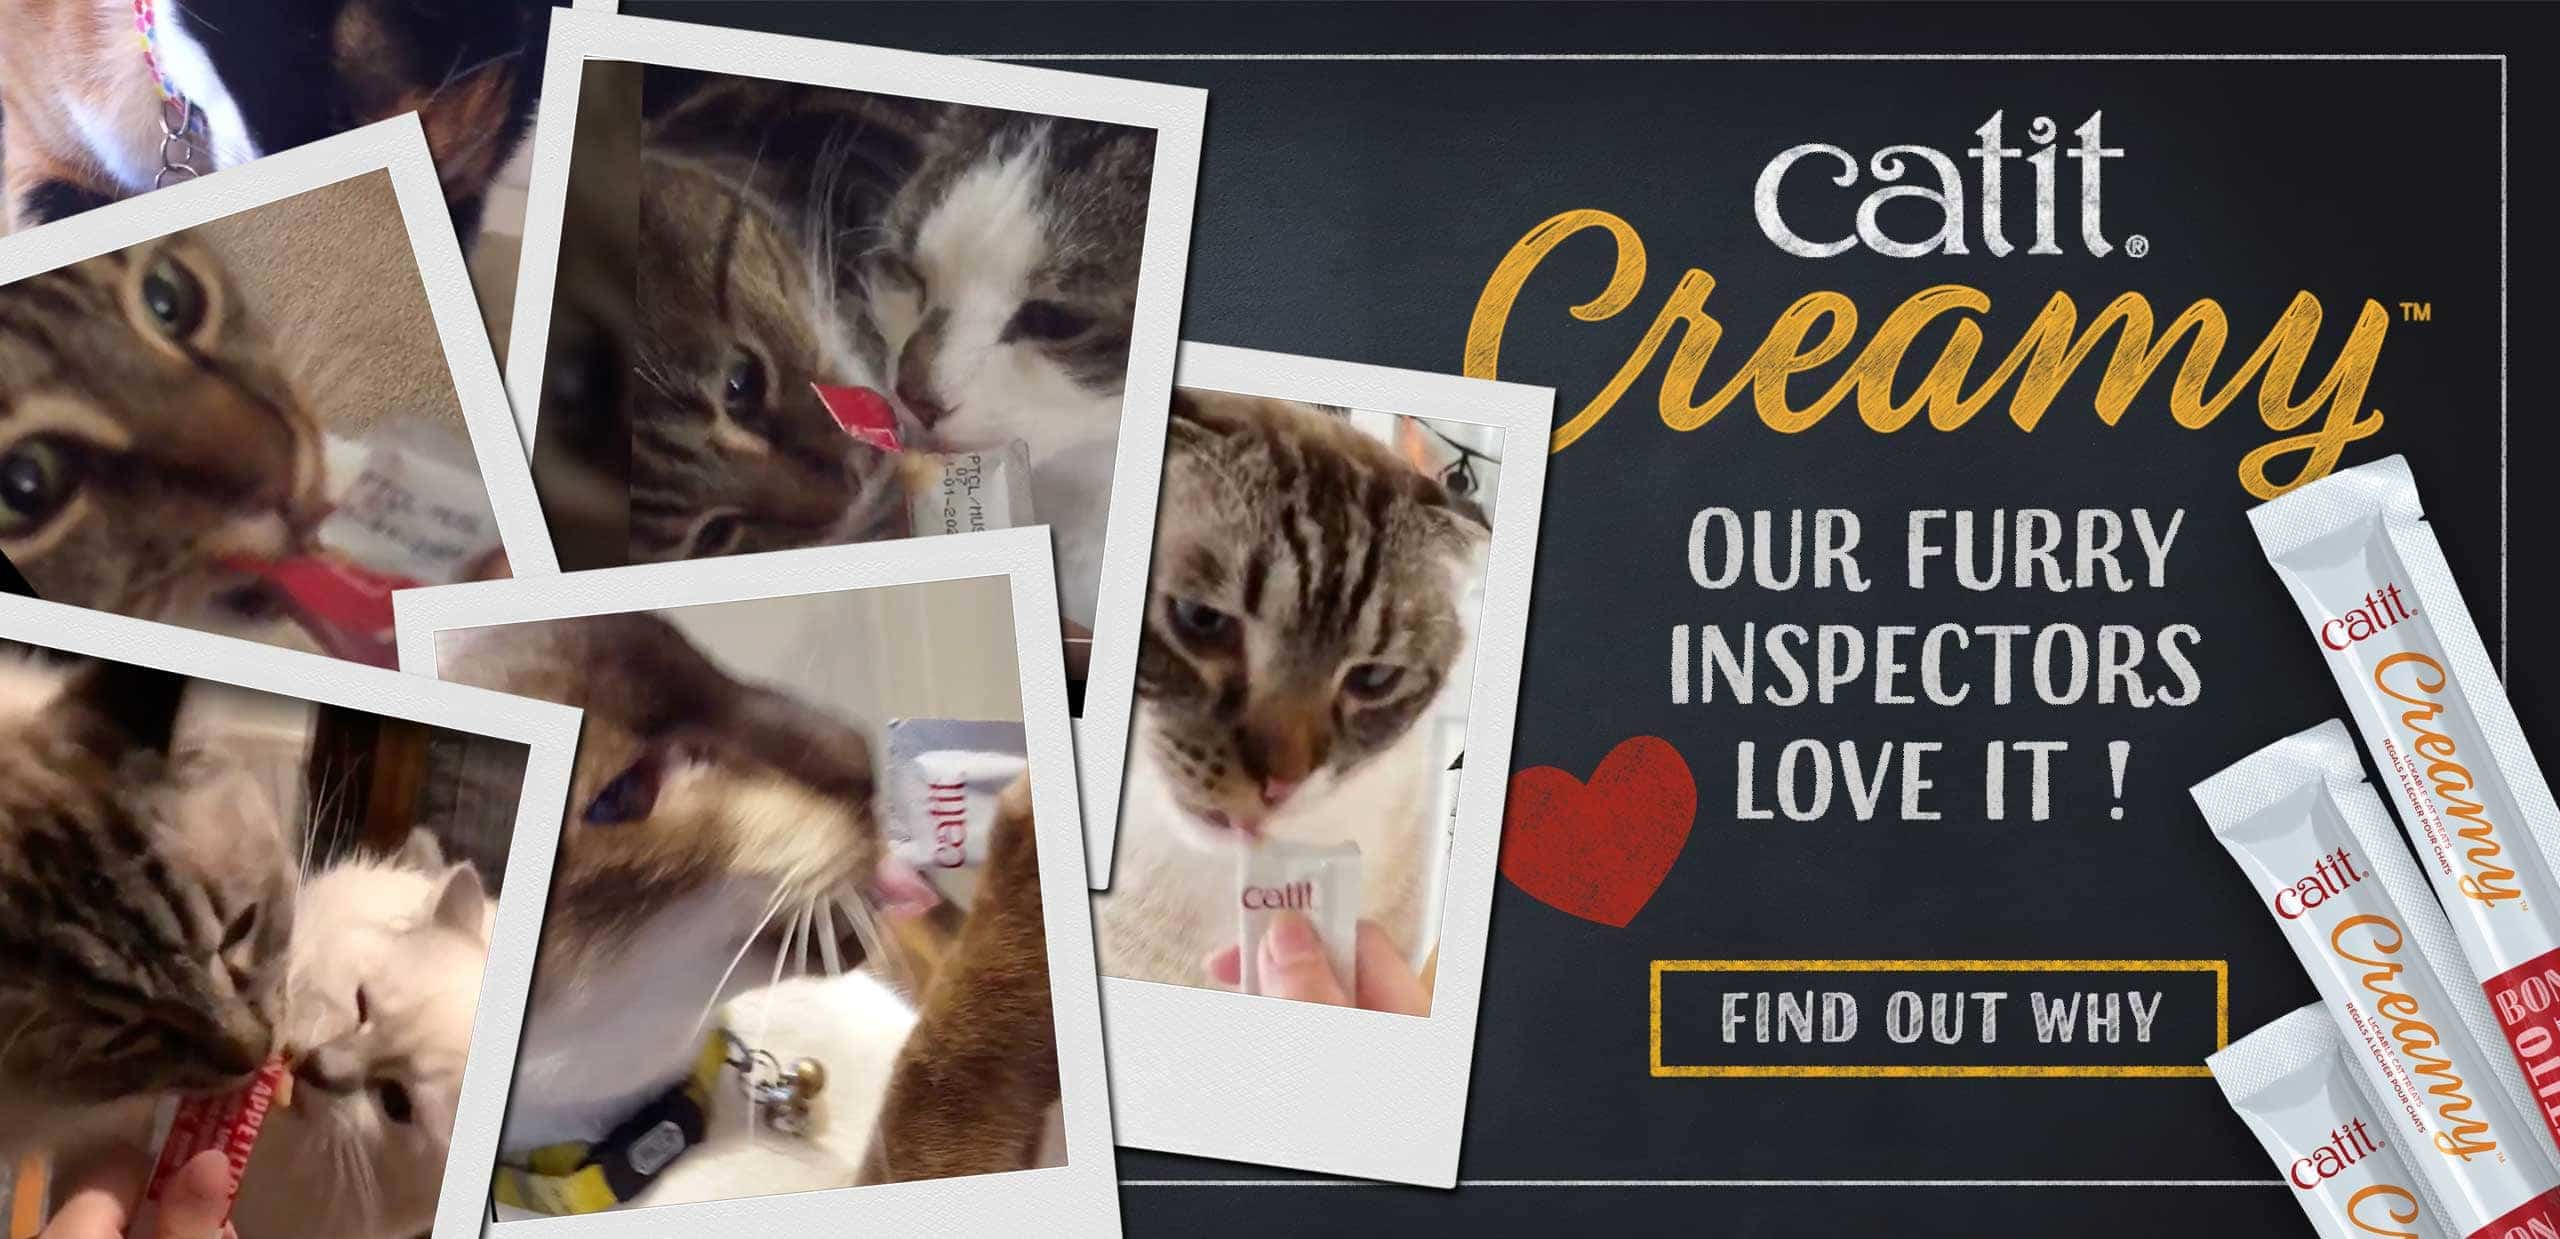 Catit Creamy - our furry inspectors love it - find out why